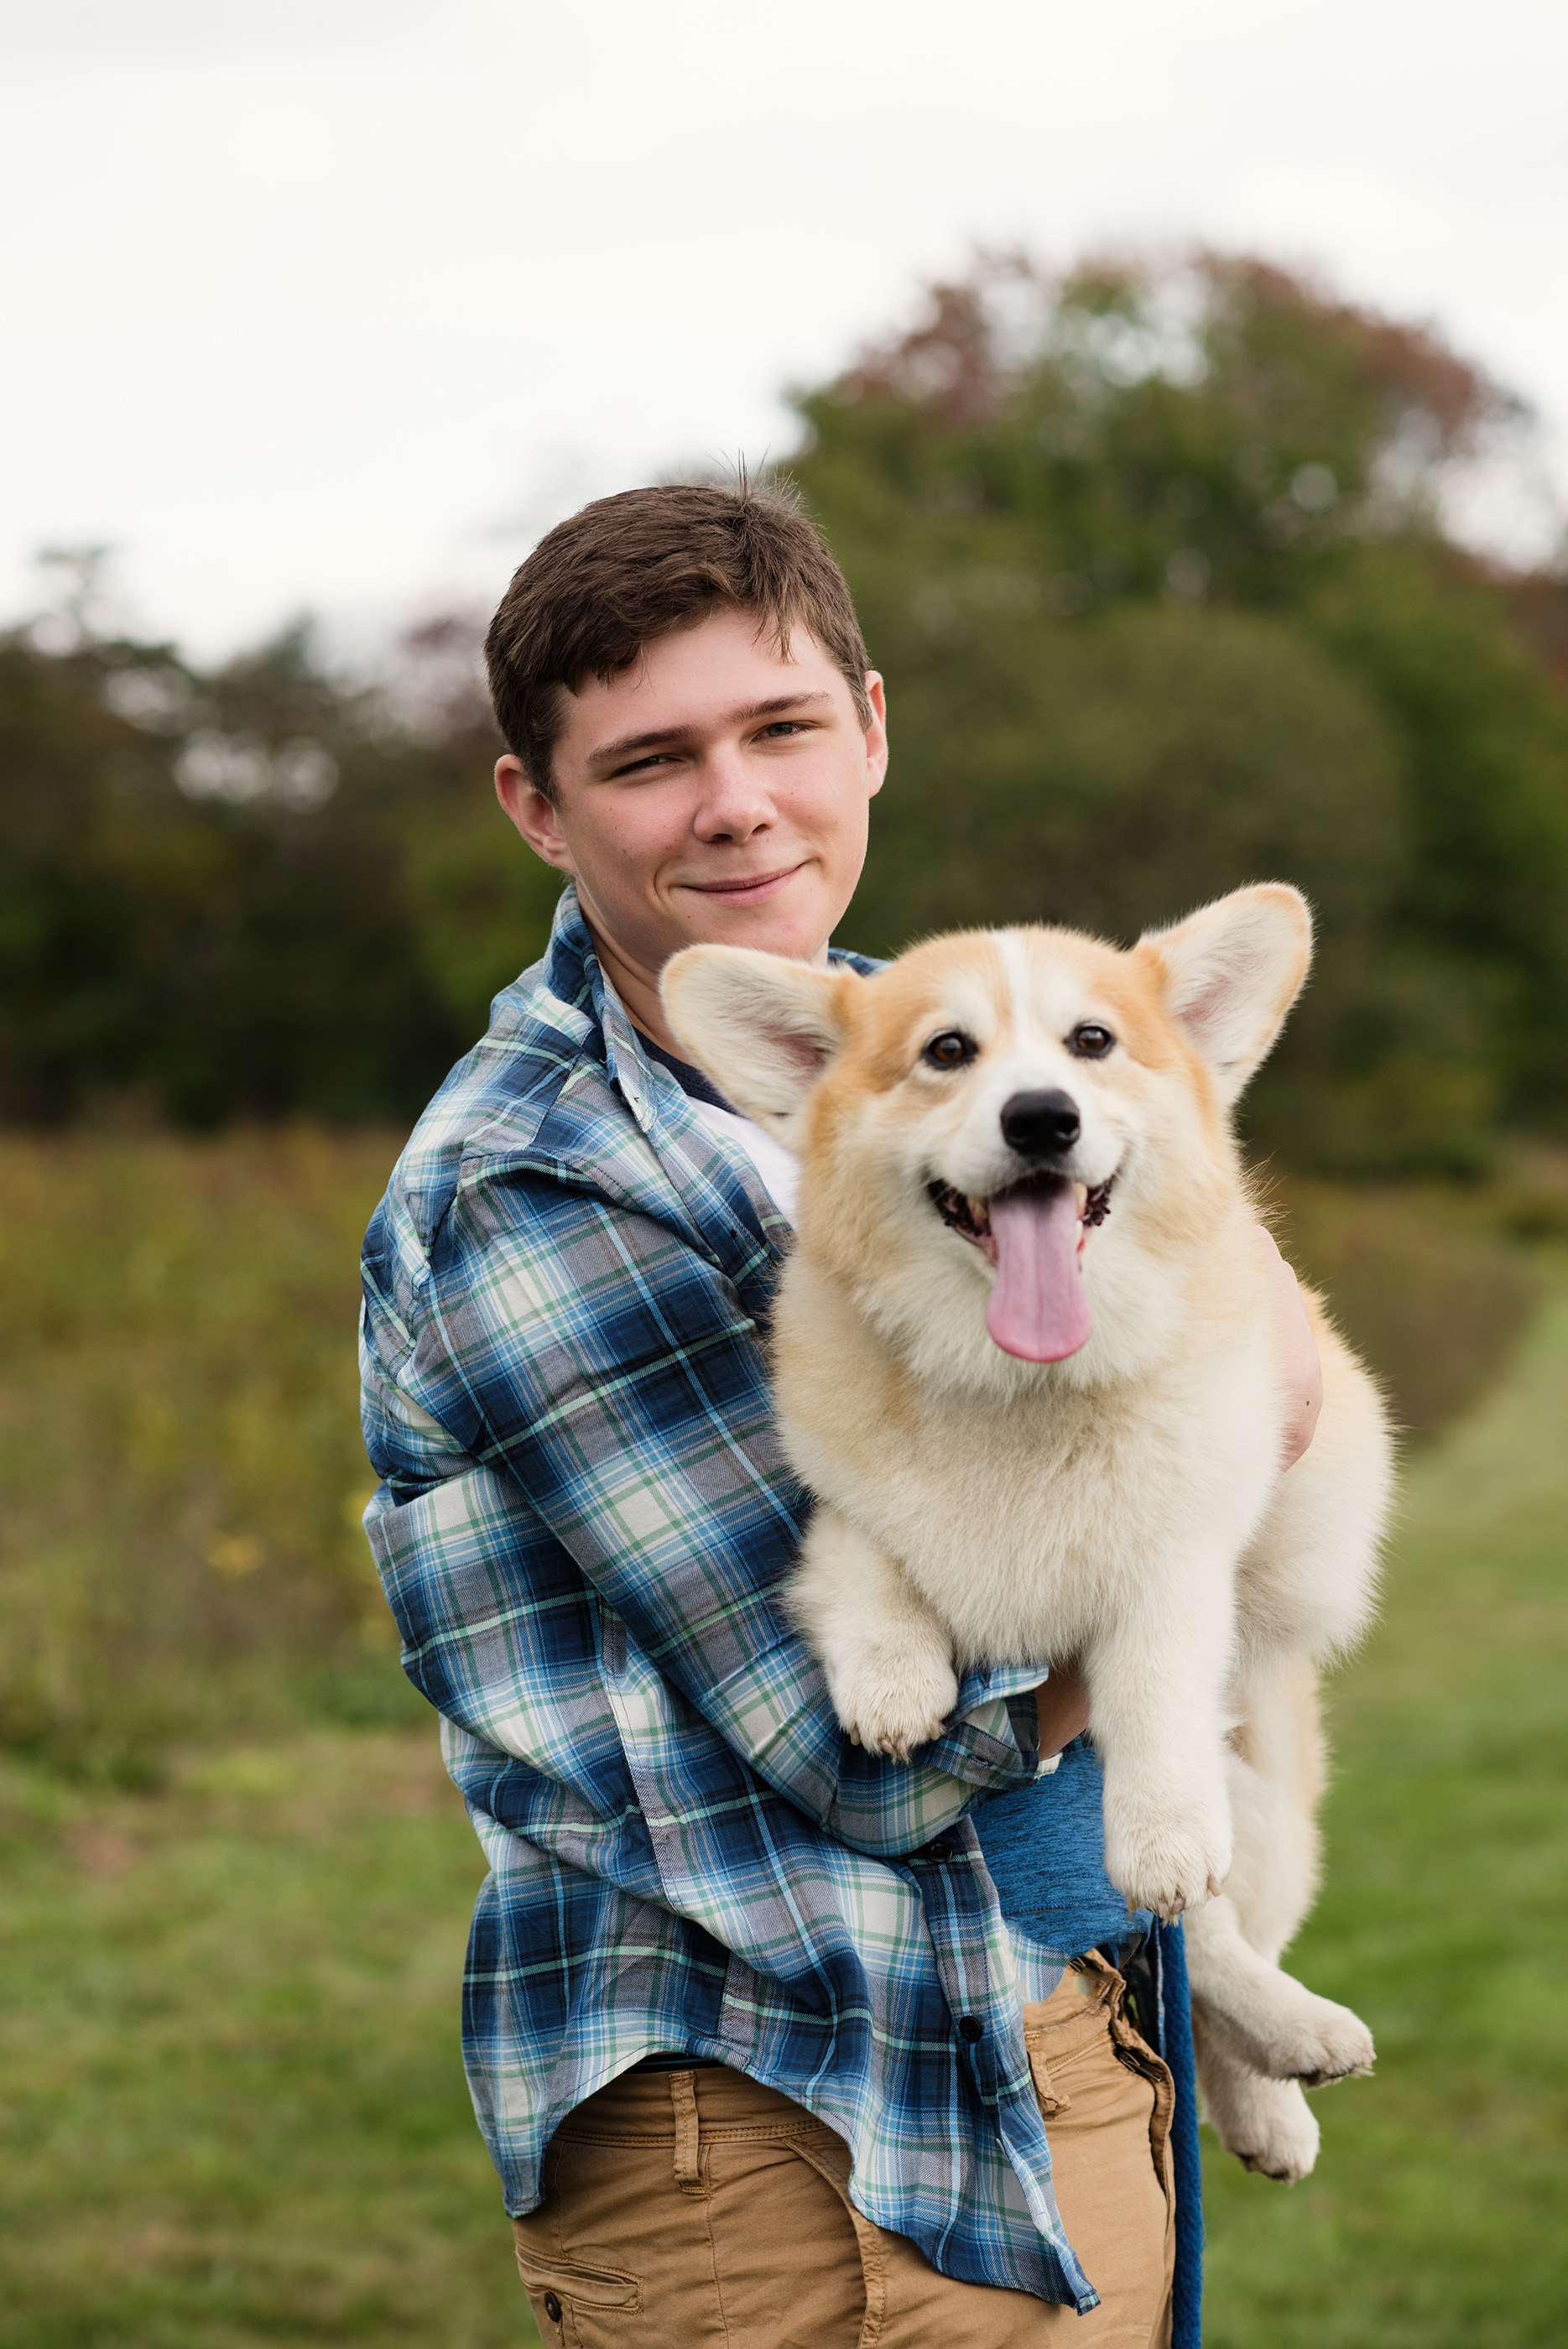 Couldn't do a senior portrait for this handsome young man without his favorite pembroke welsh corgi Milo! Smiles all around!